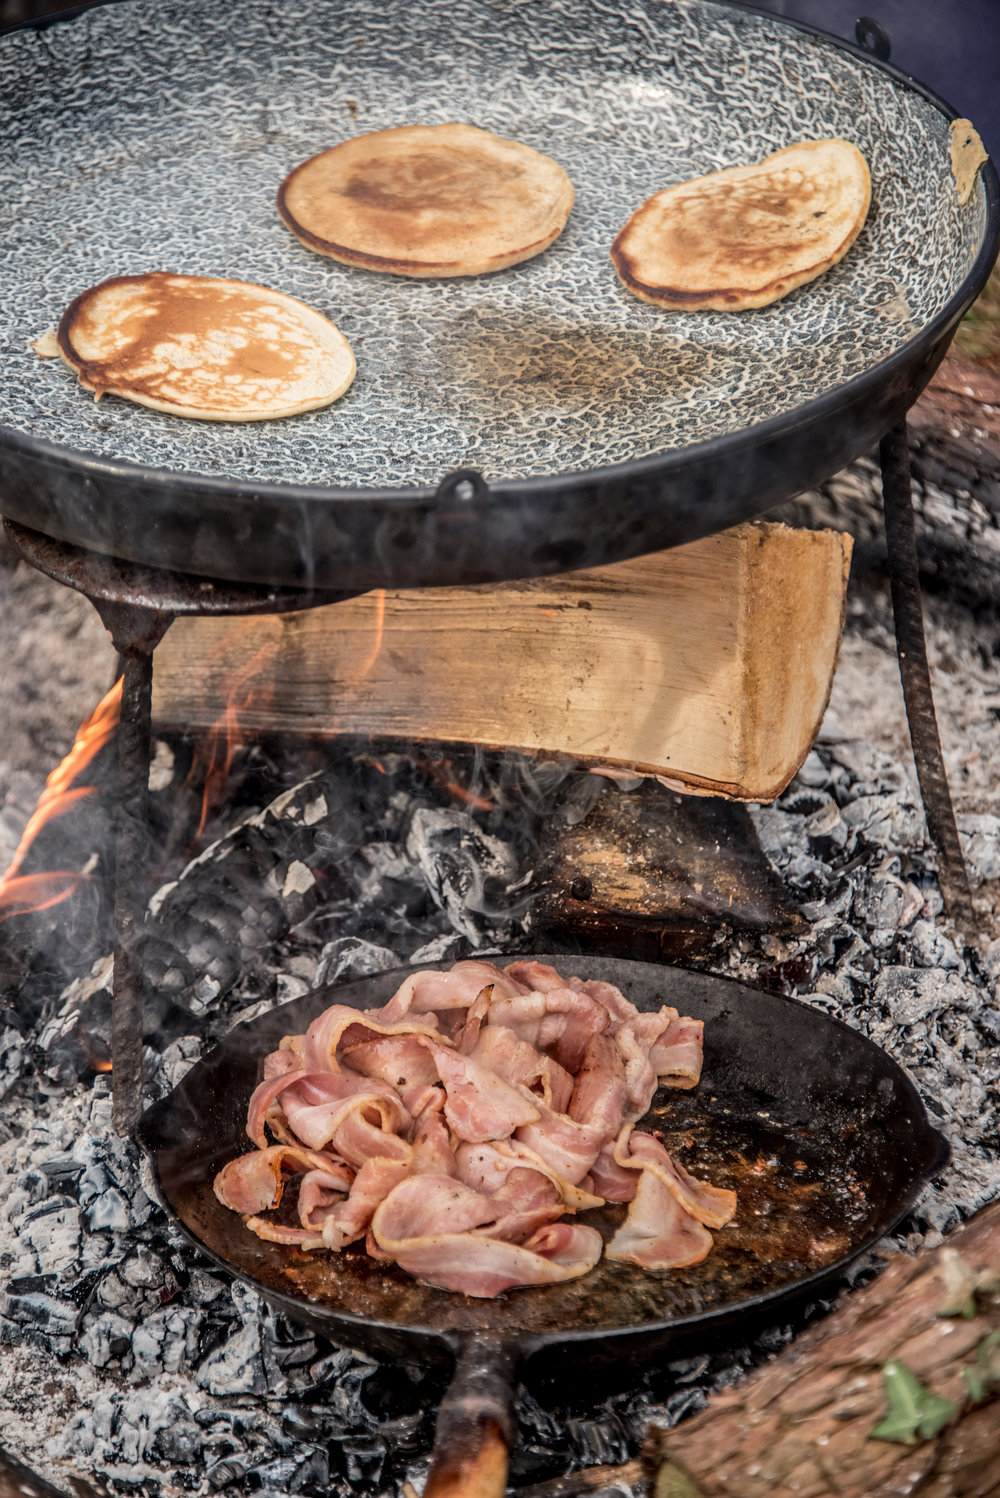 Go Wild Forest School Level 3 Training campfire pancakes bacon log.jpg